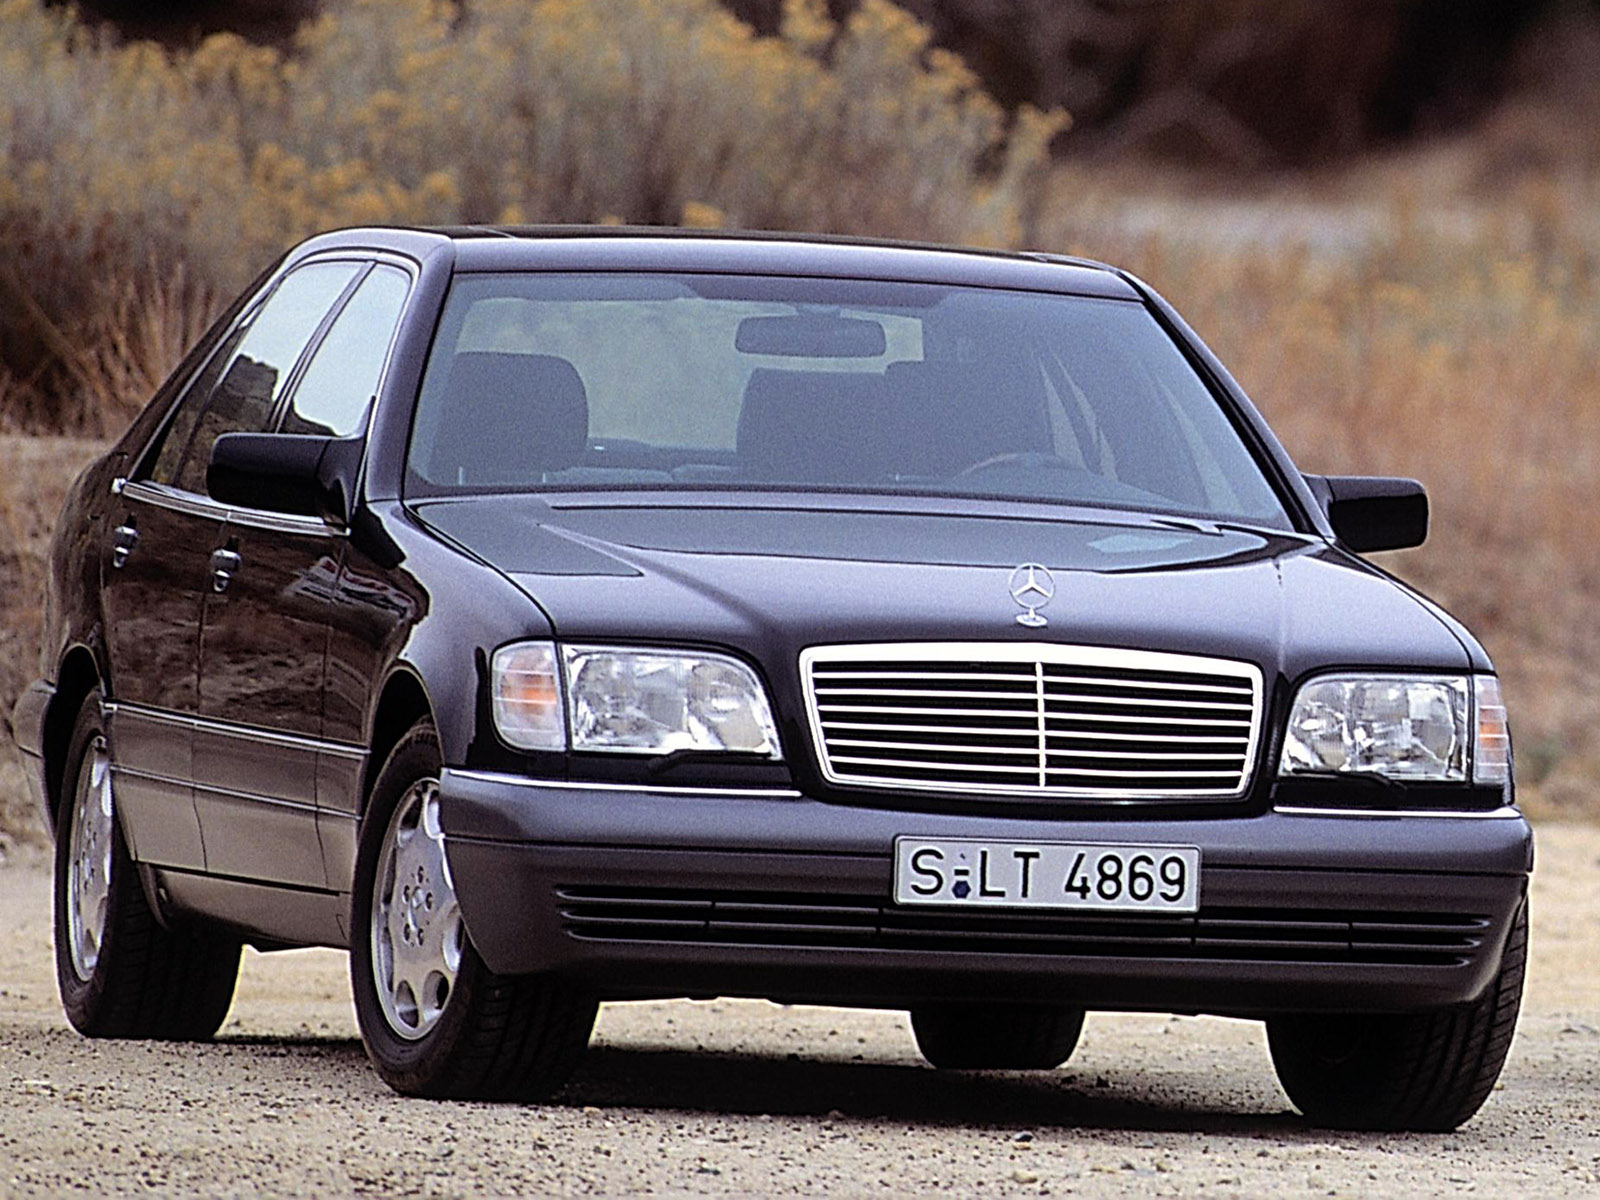 mercedes benz s class w140 picture 39419 mercedes benz photo gallery. Black Bedroom Furniture Sets. Home Design Ideas